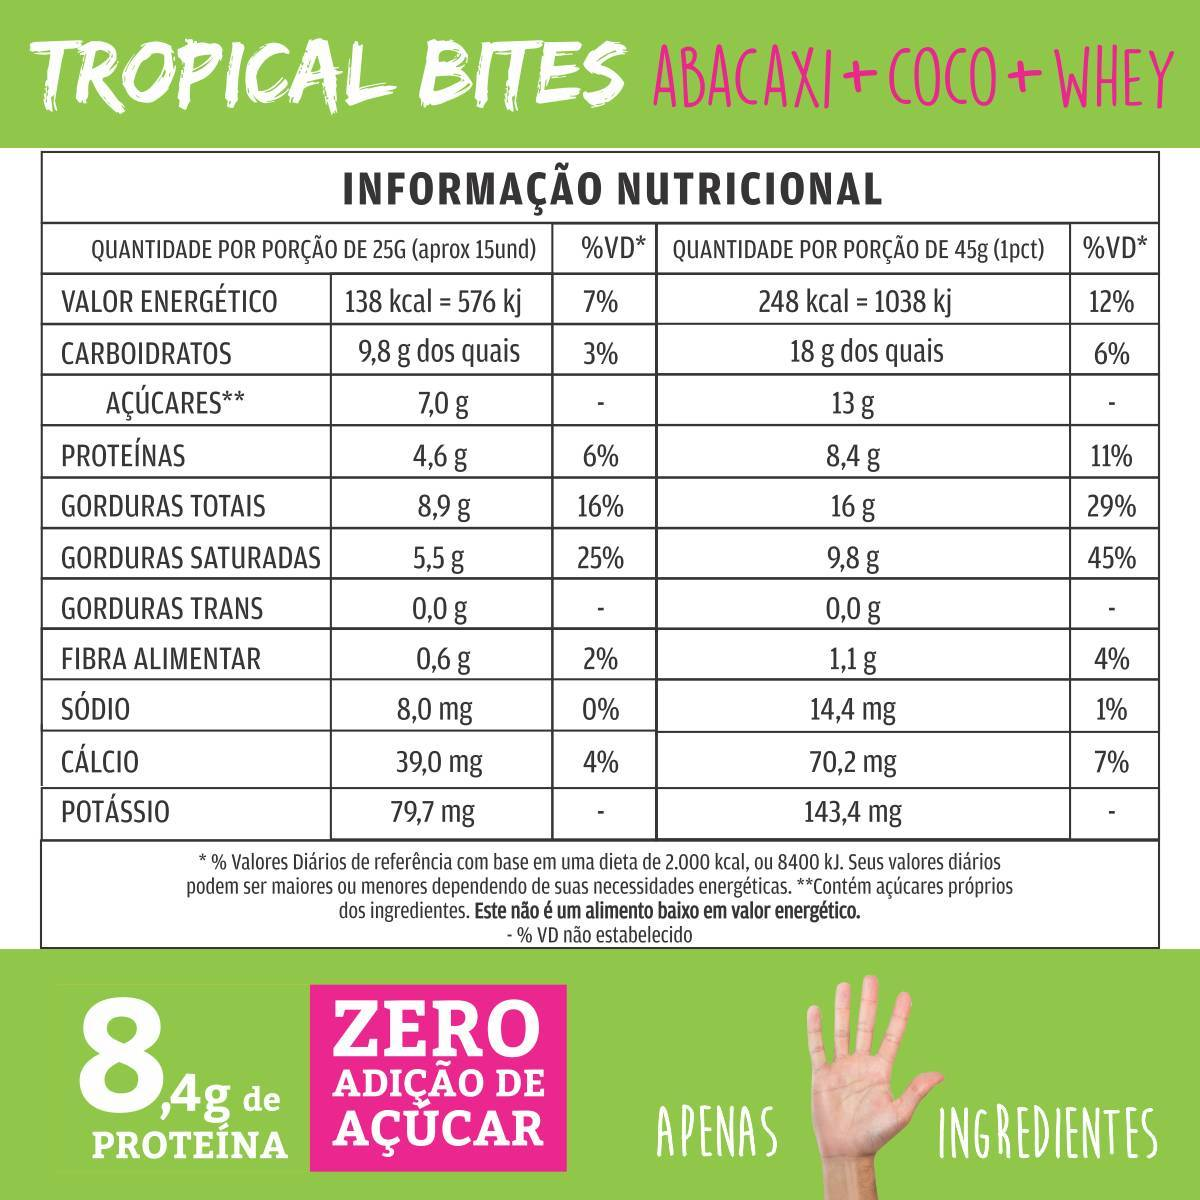 TROPICAL BITES (ABACAXI + COCO + WHEY) - QPod